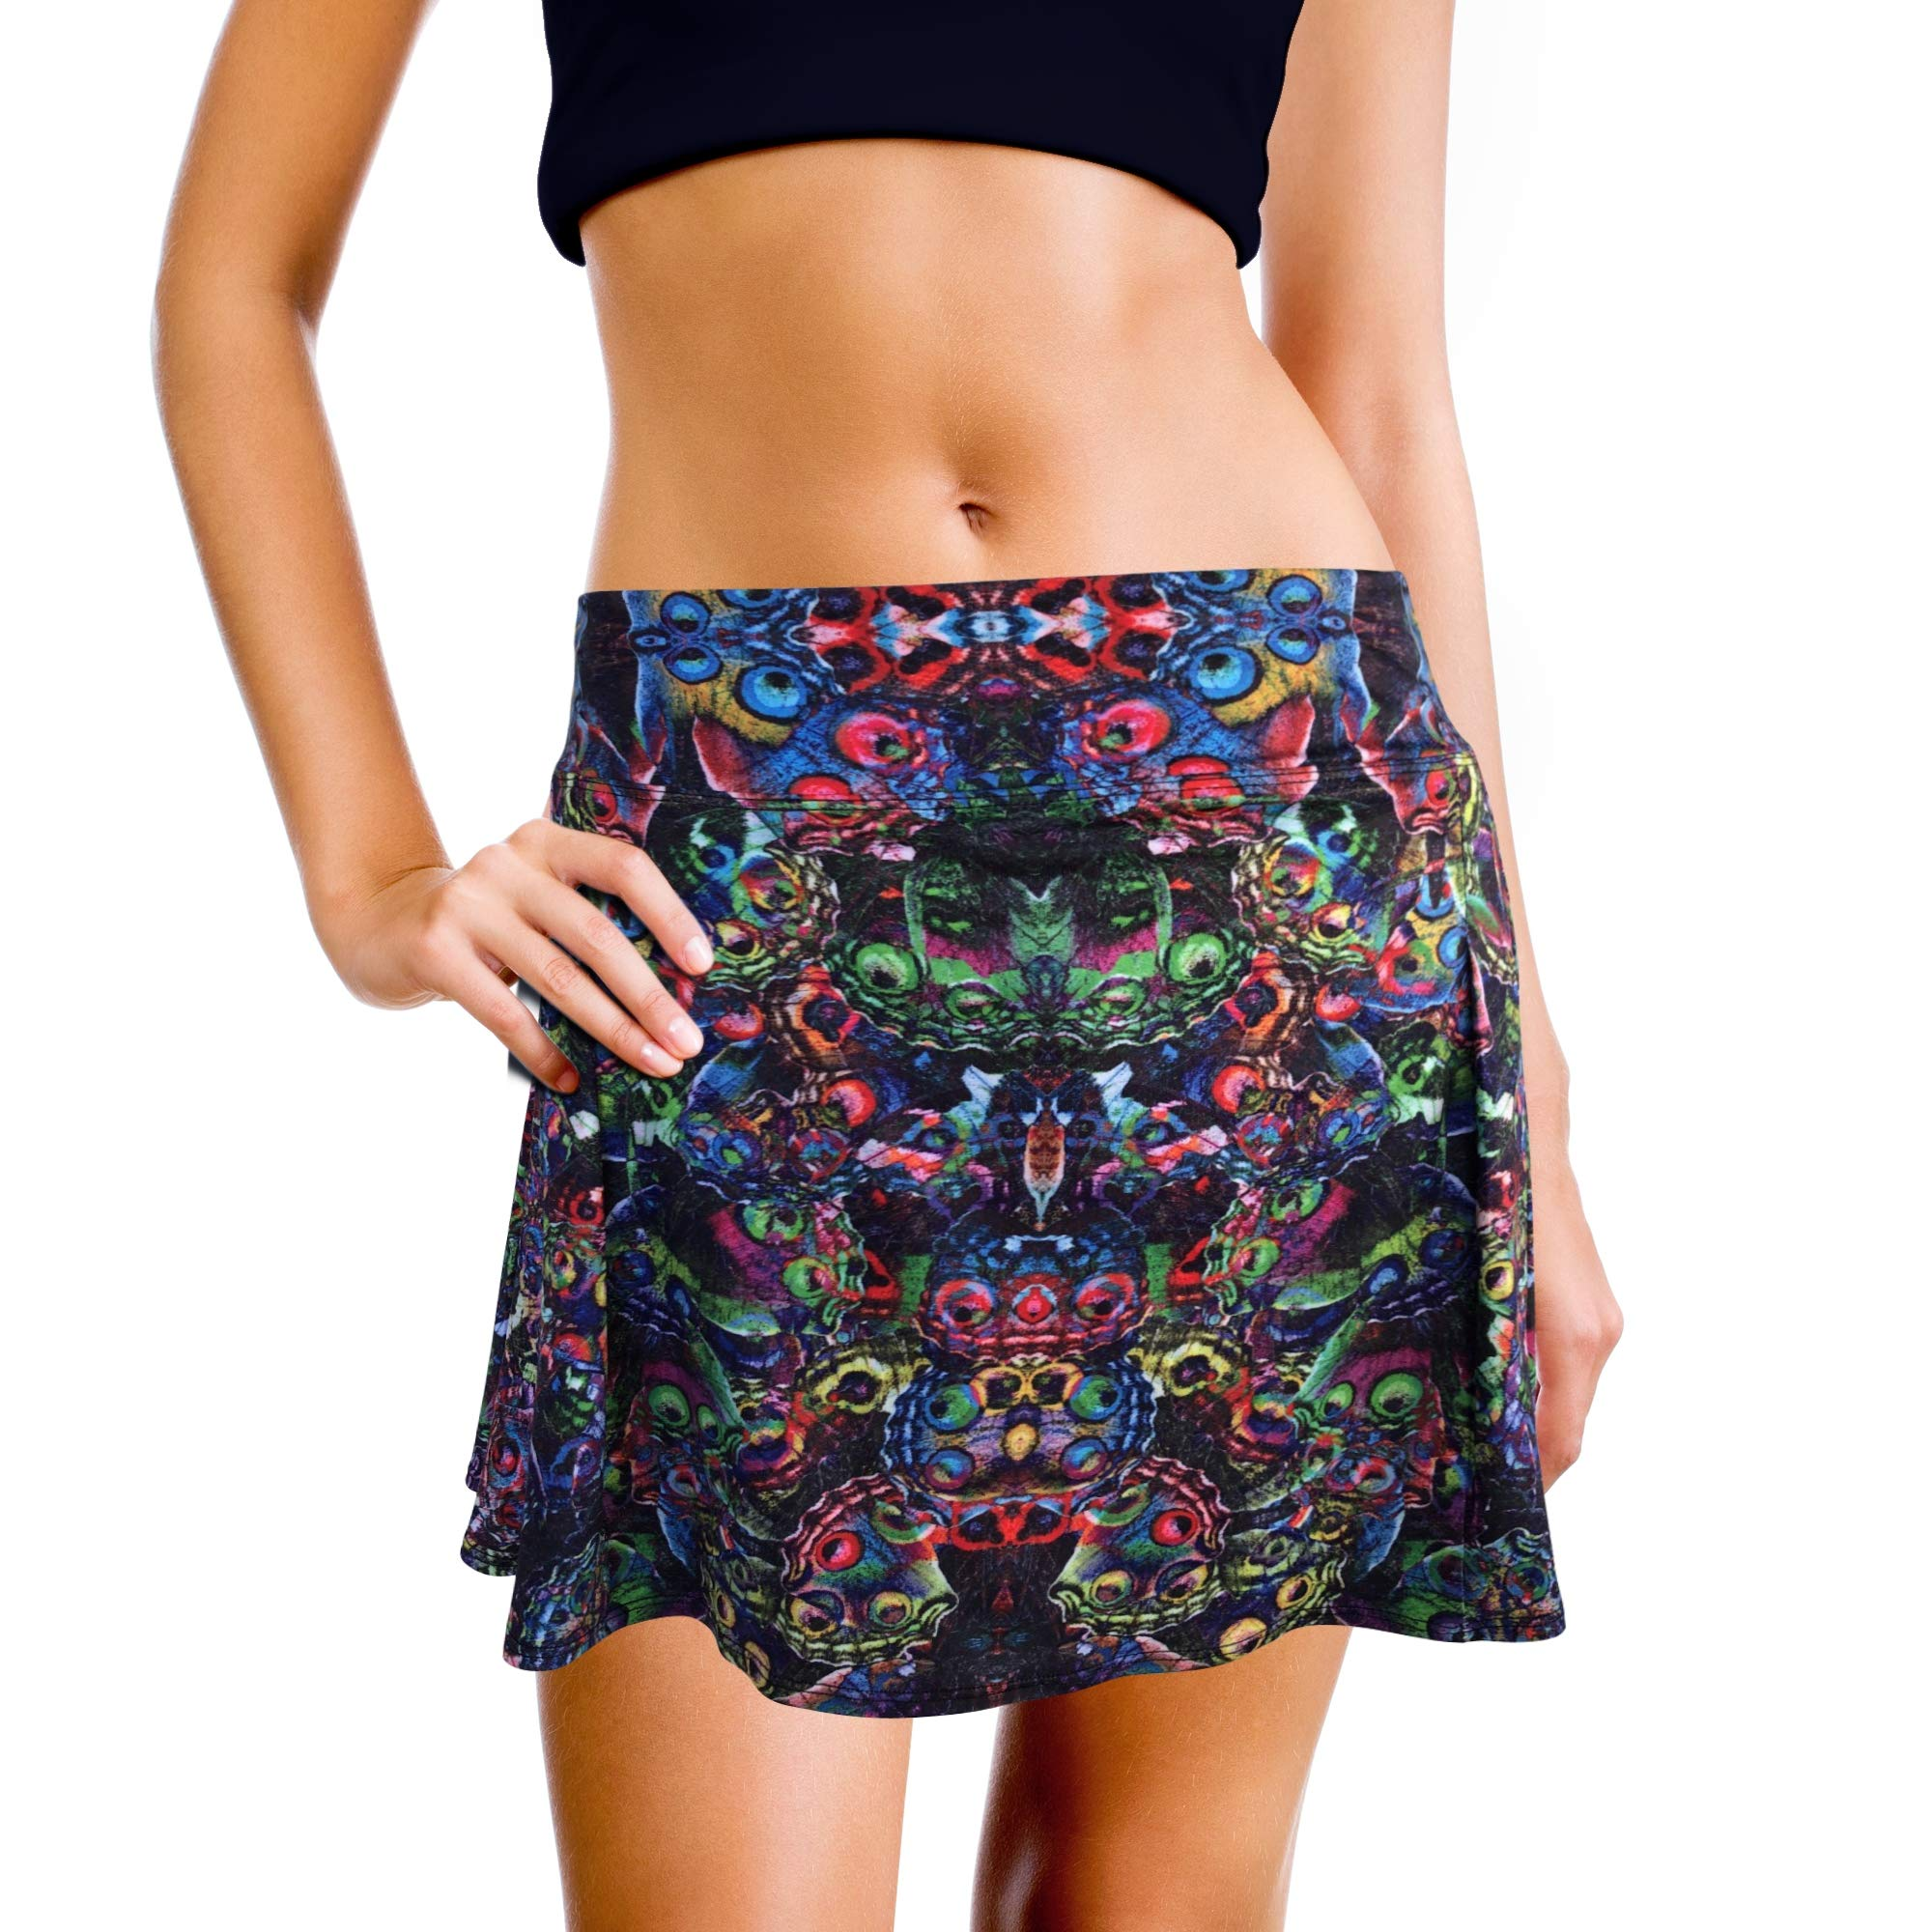 XrSzChic Womens Tennis Golf Athletic Exercise Printed Skirt Skorts Short Pockets by XrSzChic